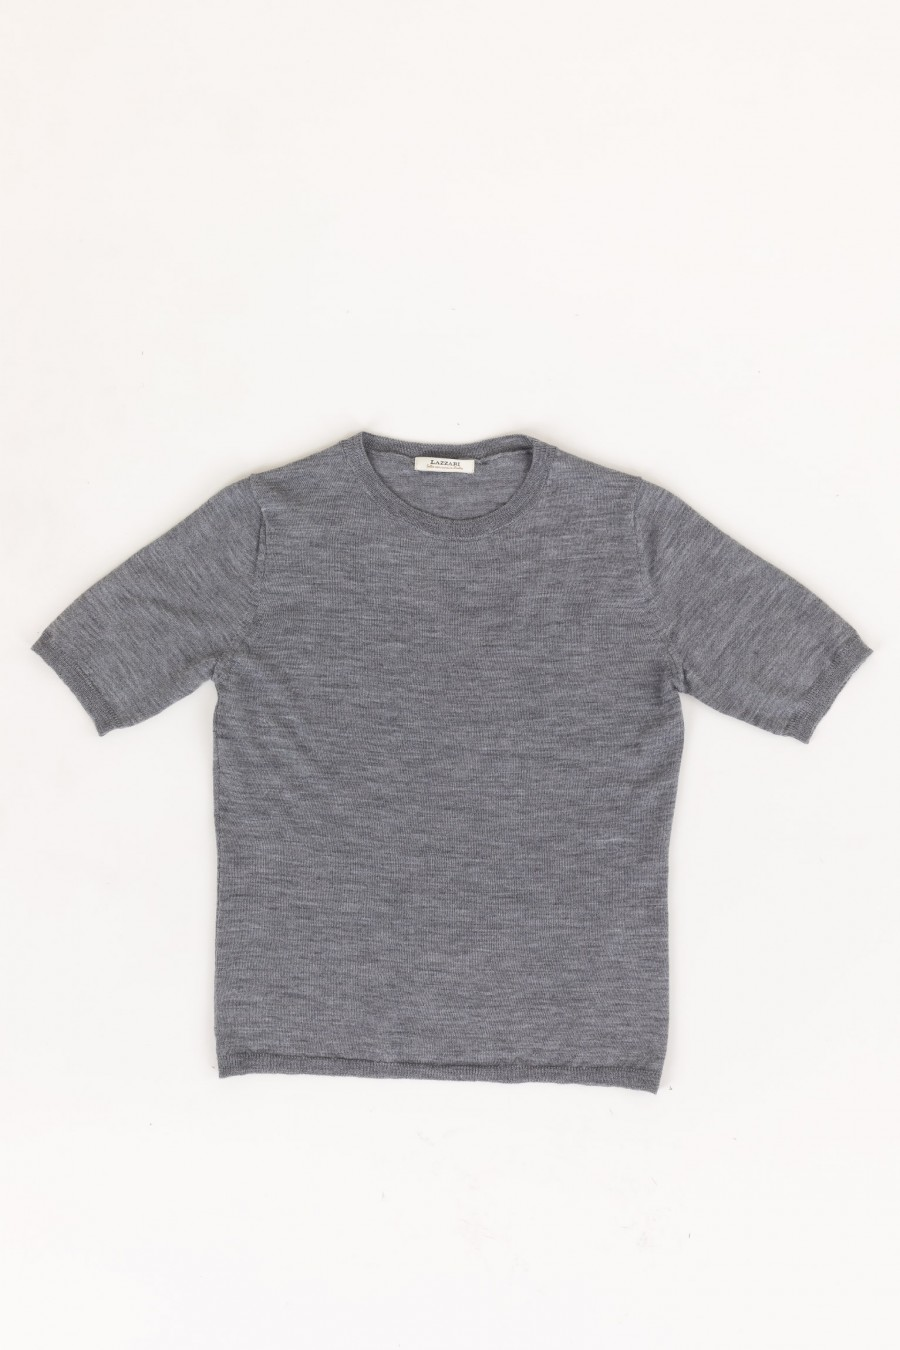 Grey wool t-shirt